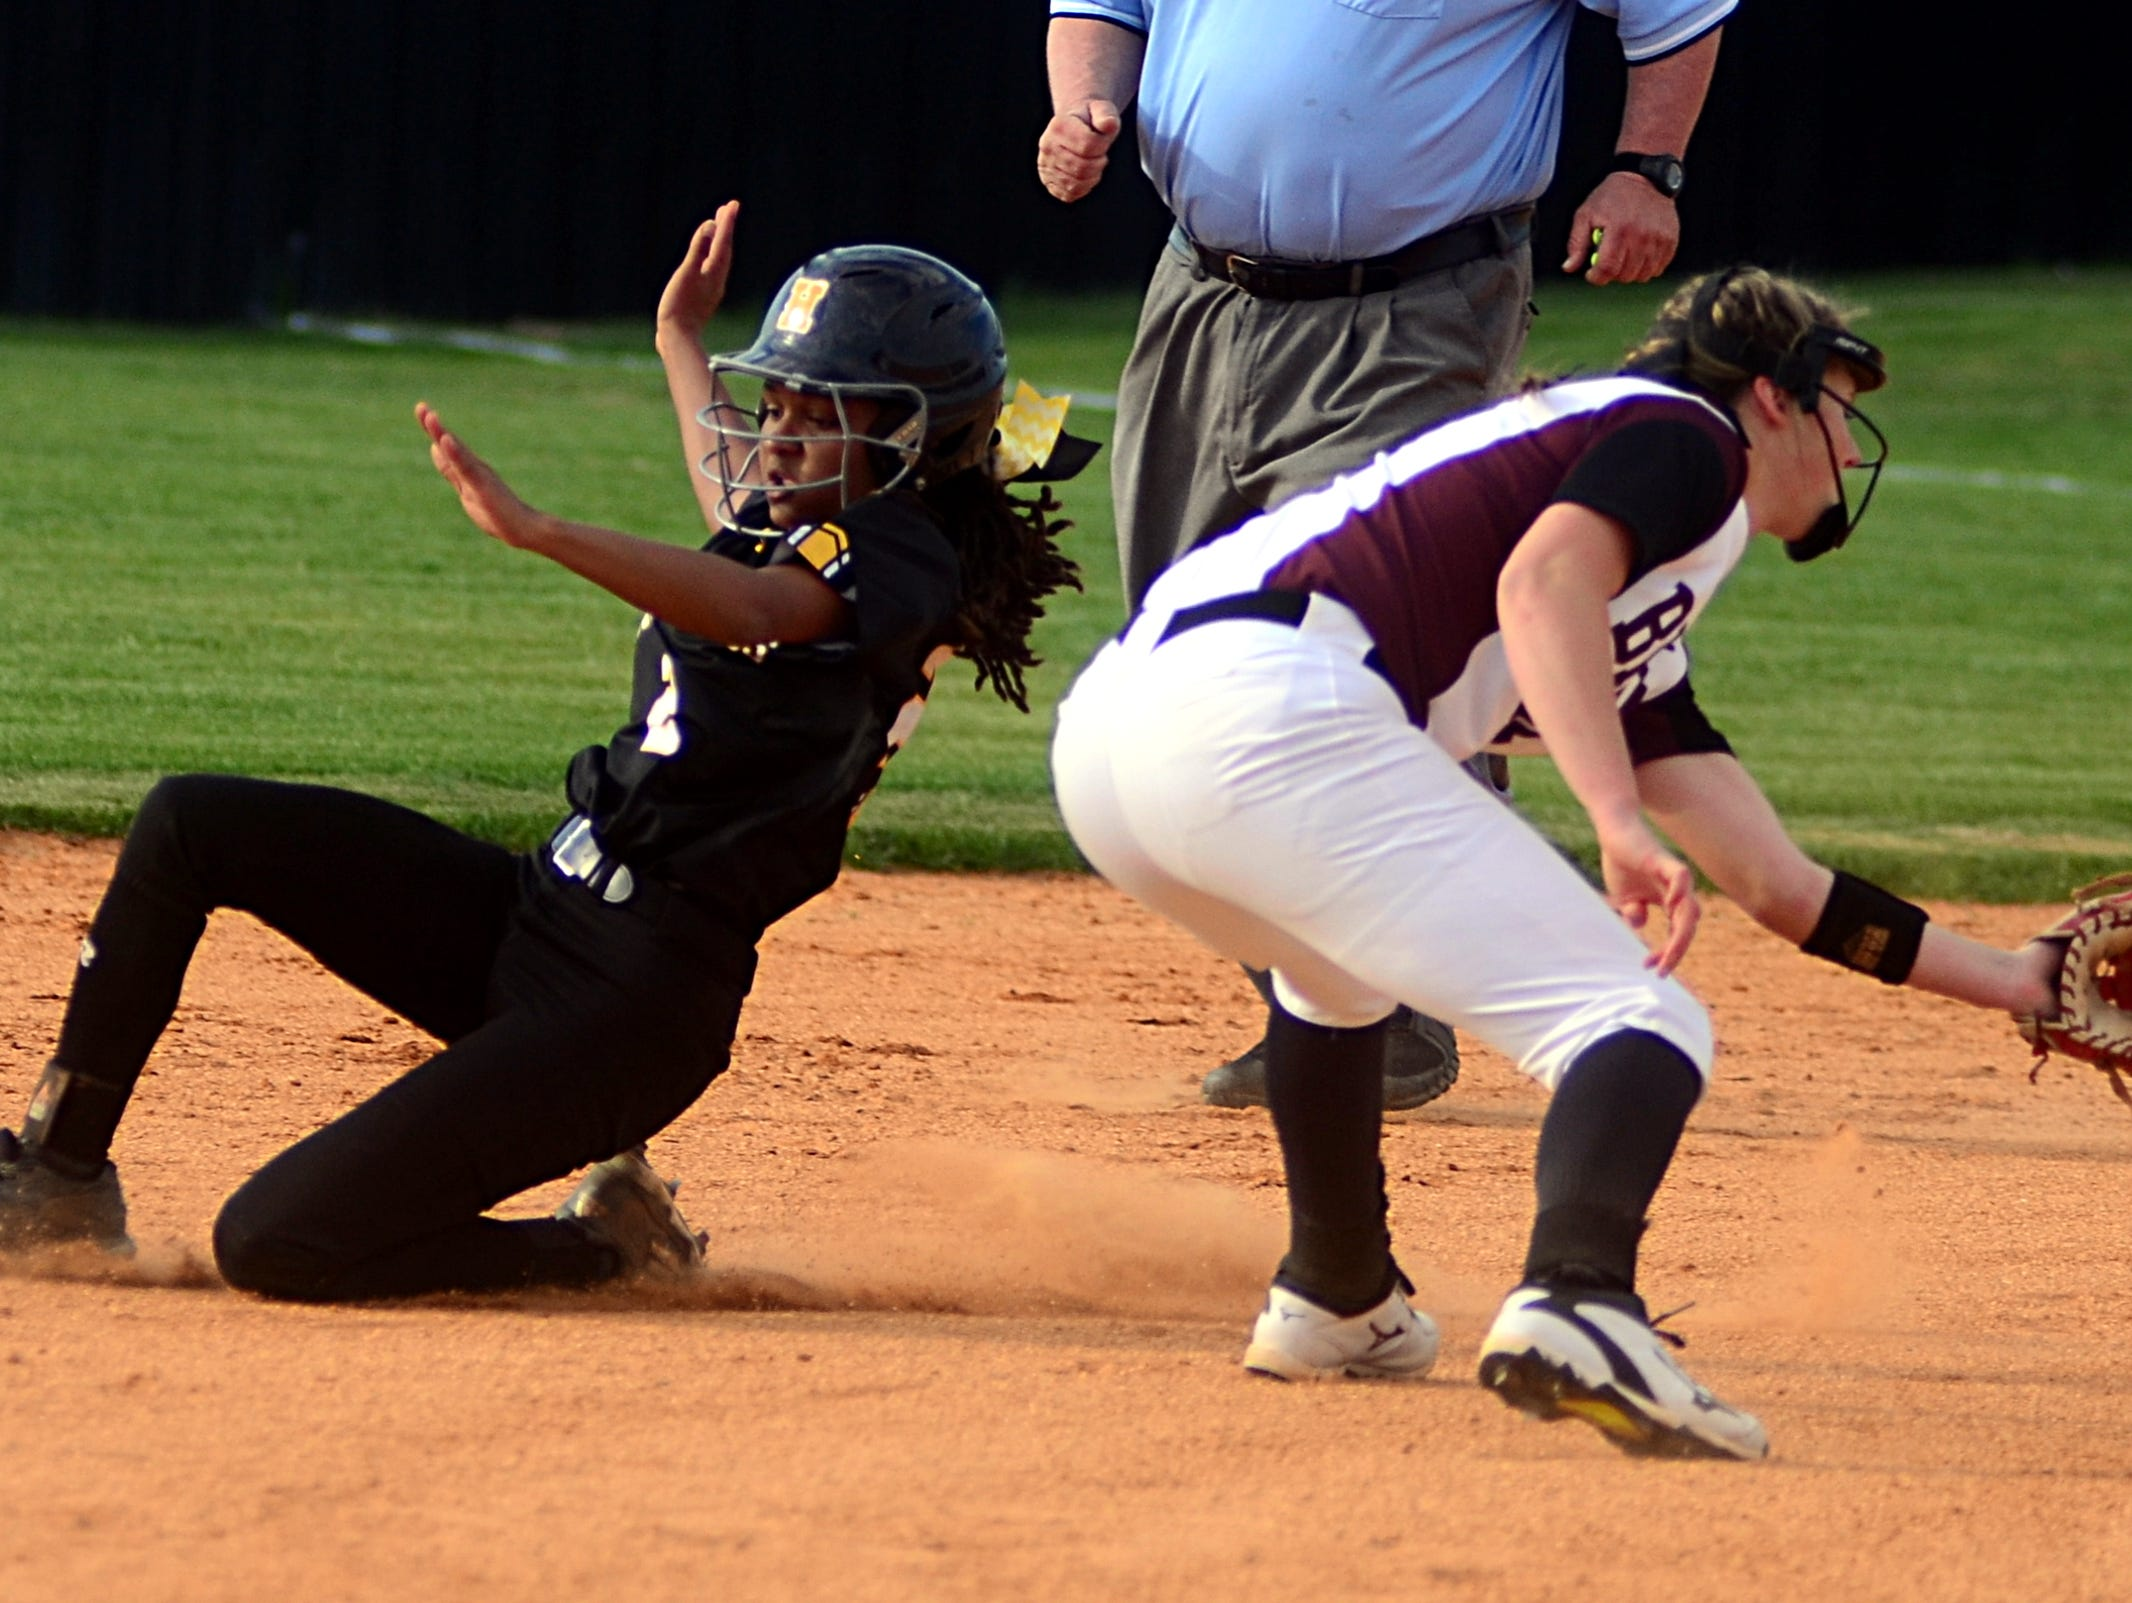 Hendersonville High junior Ace Hanson steals second base as Station Camp sophomore shortstop Jordan Hodge receives a throw during first-inning action. Hanson scored two runs in the Lady Commandos' 14-2 victory.